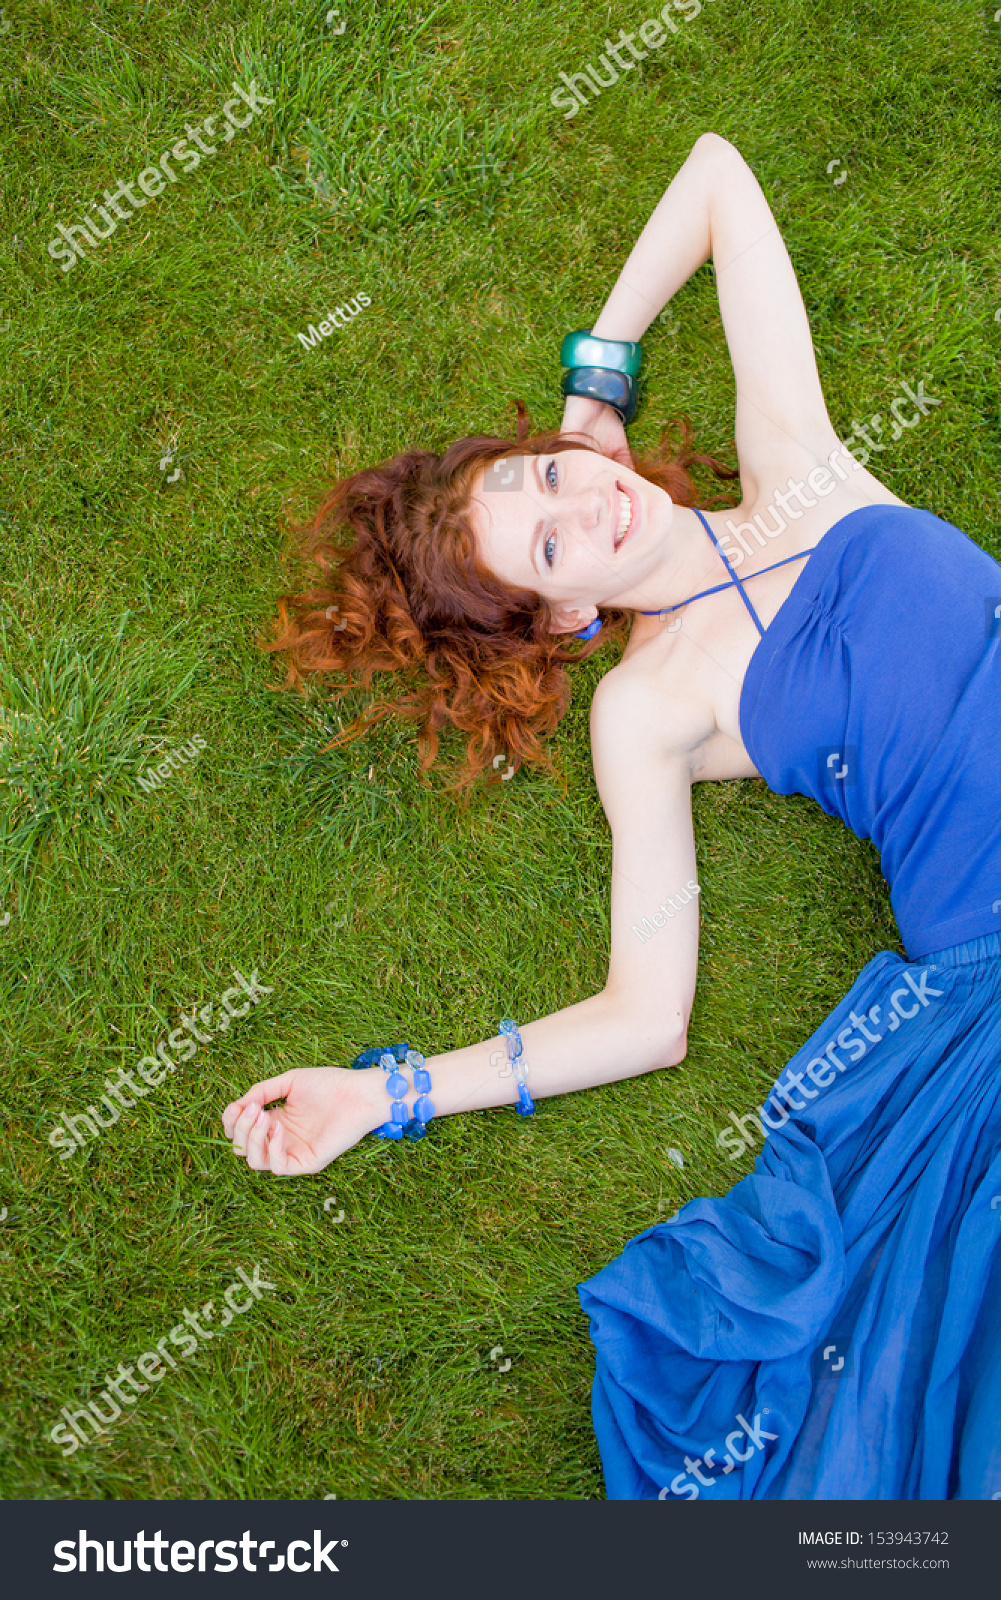 Up view of smiling 20s redhead women weared blue tank top, laying down in the fresh summer grass and having summertime fun and enjoyment, art bracelets on the hand